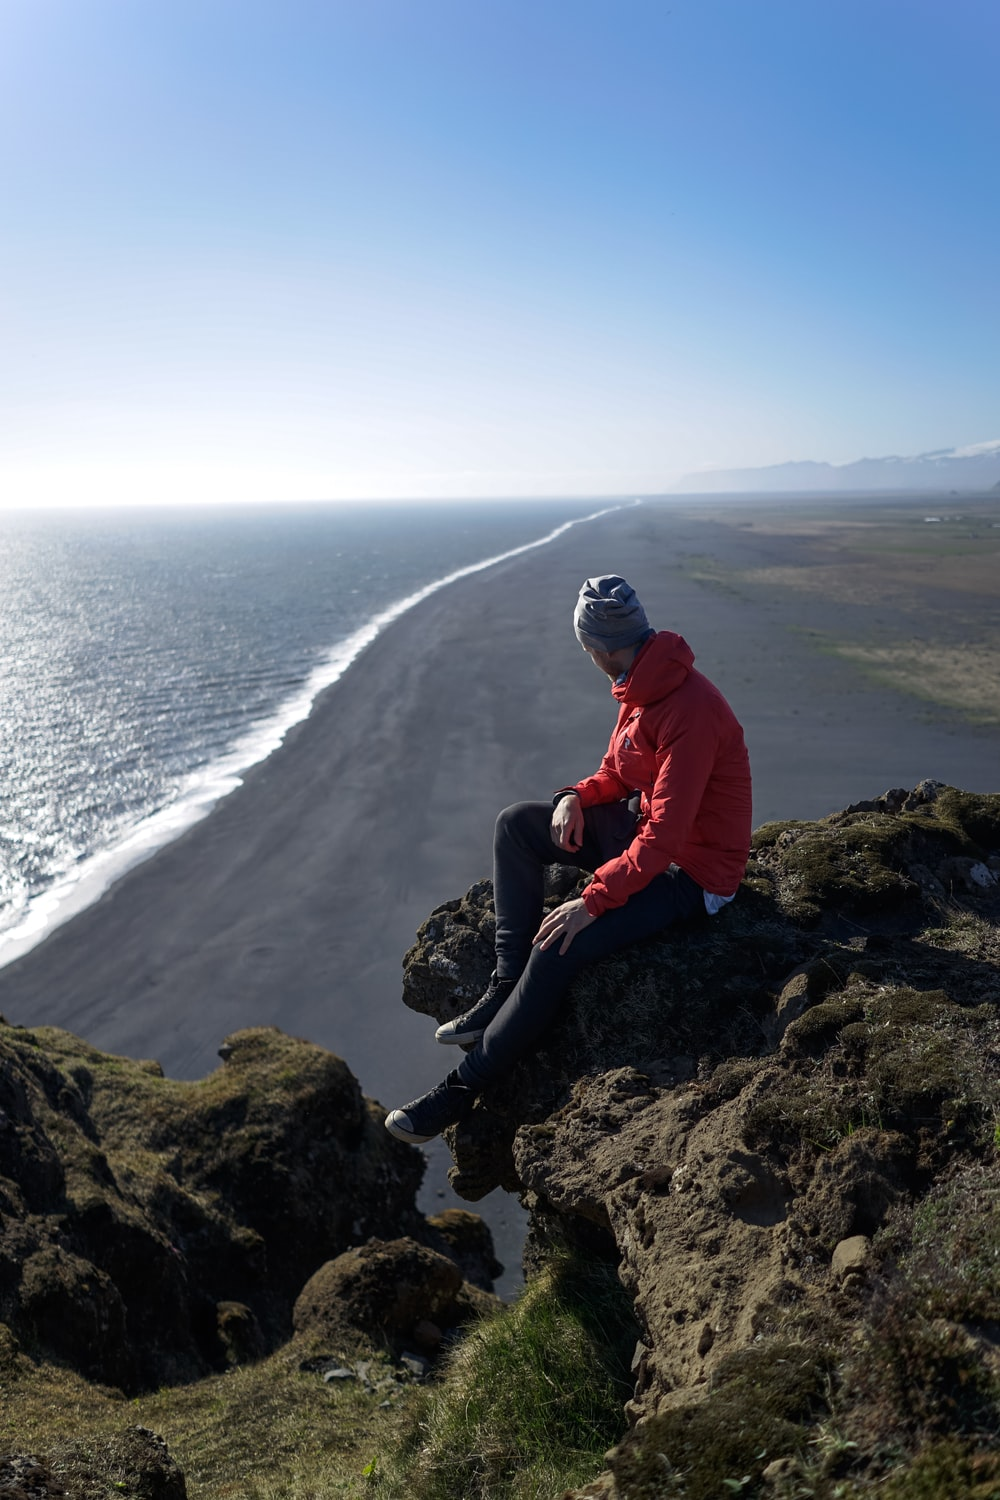 man sitting on mountain cliff near body of water